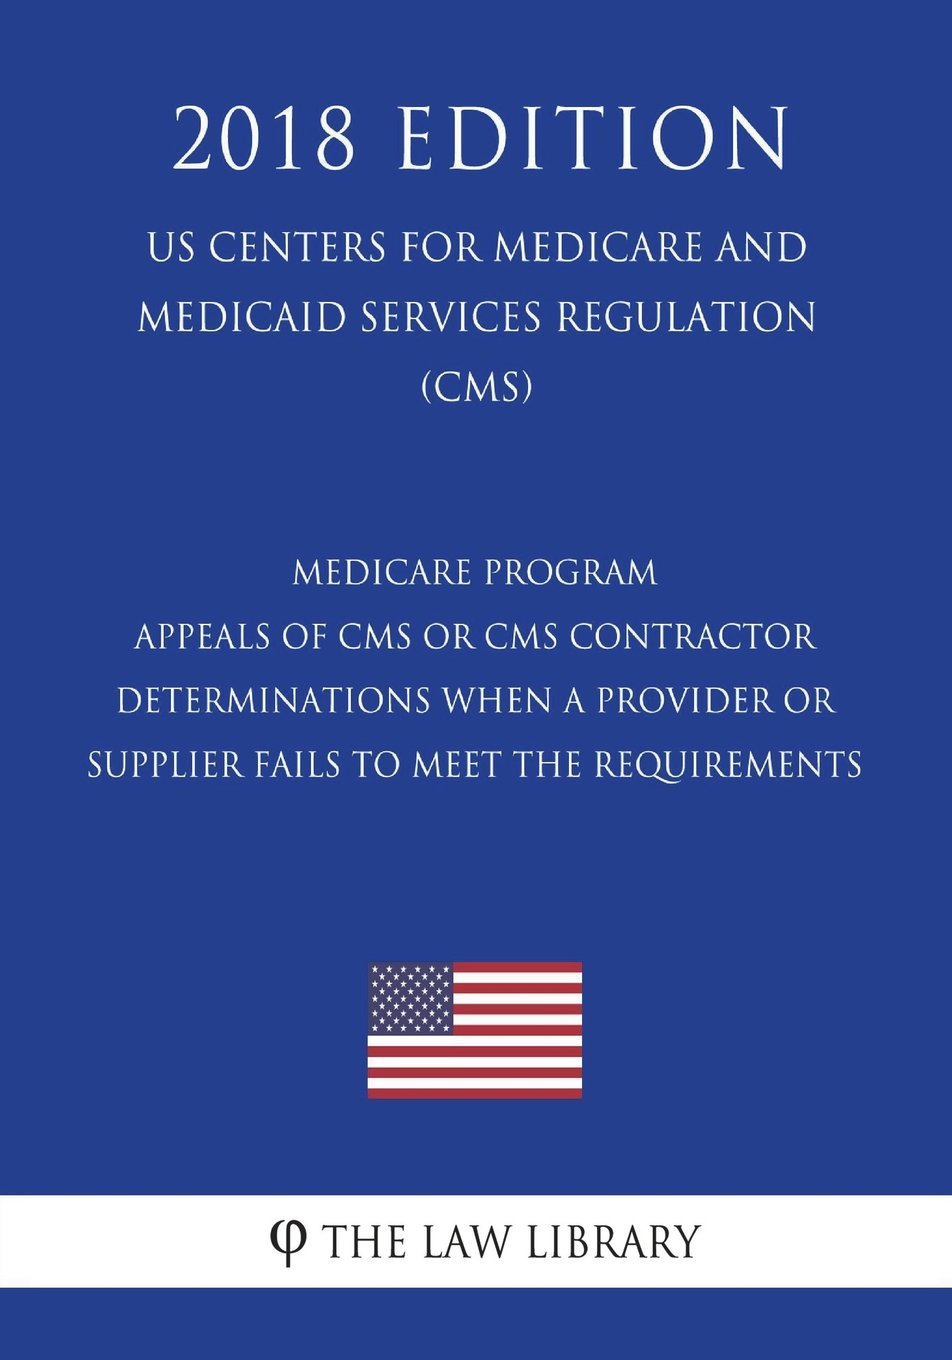 Medicare Program - Appeals of CMS or CMS Contractor Determinations When a Provider or Supplier Fails to Meet the Requirements (US Centers for Medicare ... Services Regulation) (CMS) (2018 Edition) PDF